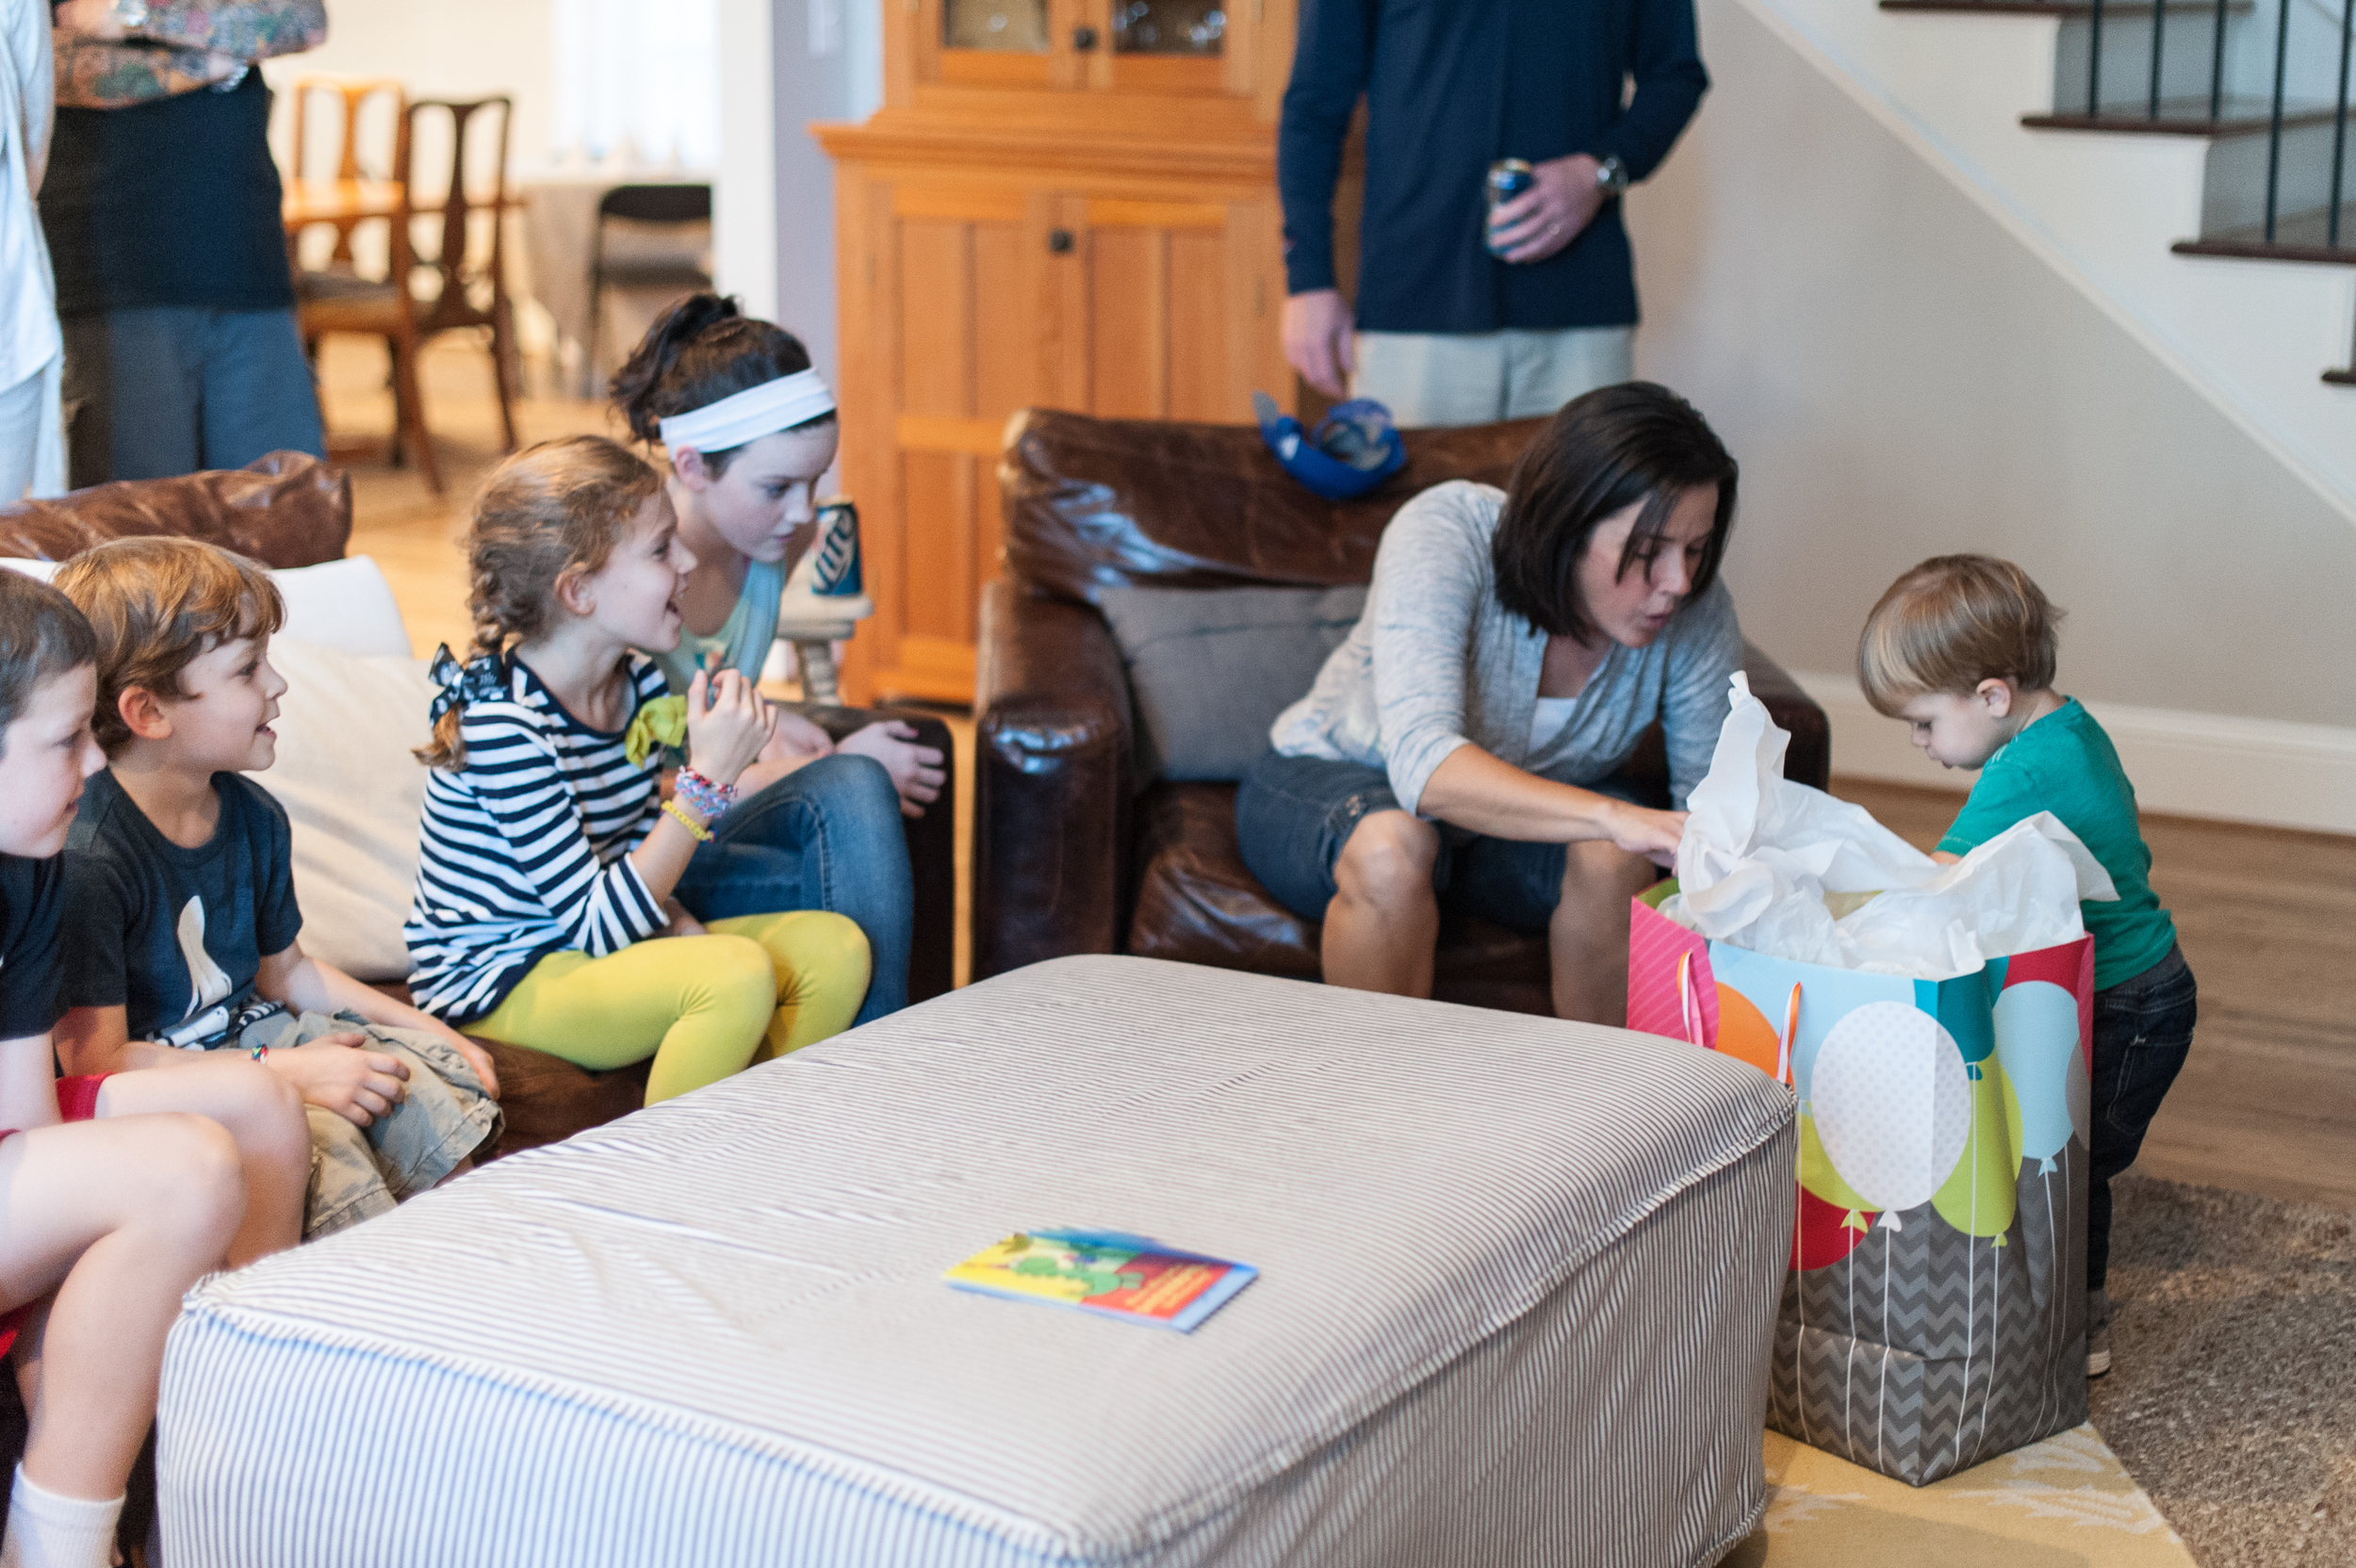 Following some stern words, the Peanut Gallery kept to the couch while Henry was coaxed into seeing what was in the bag.